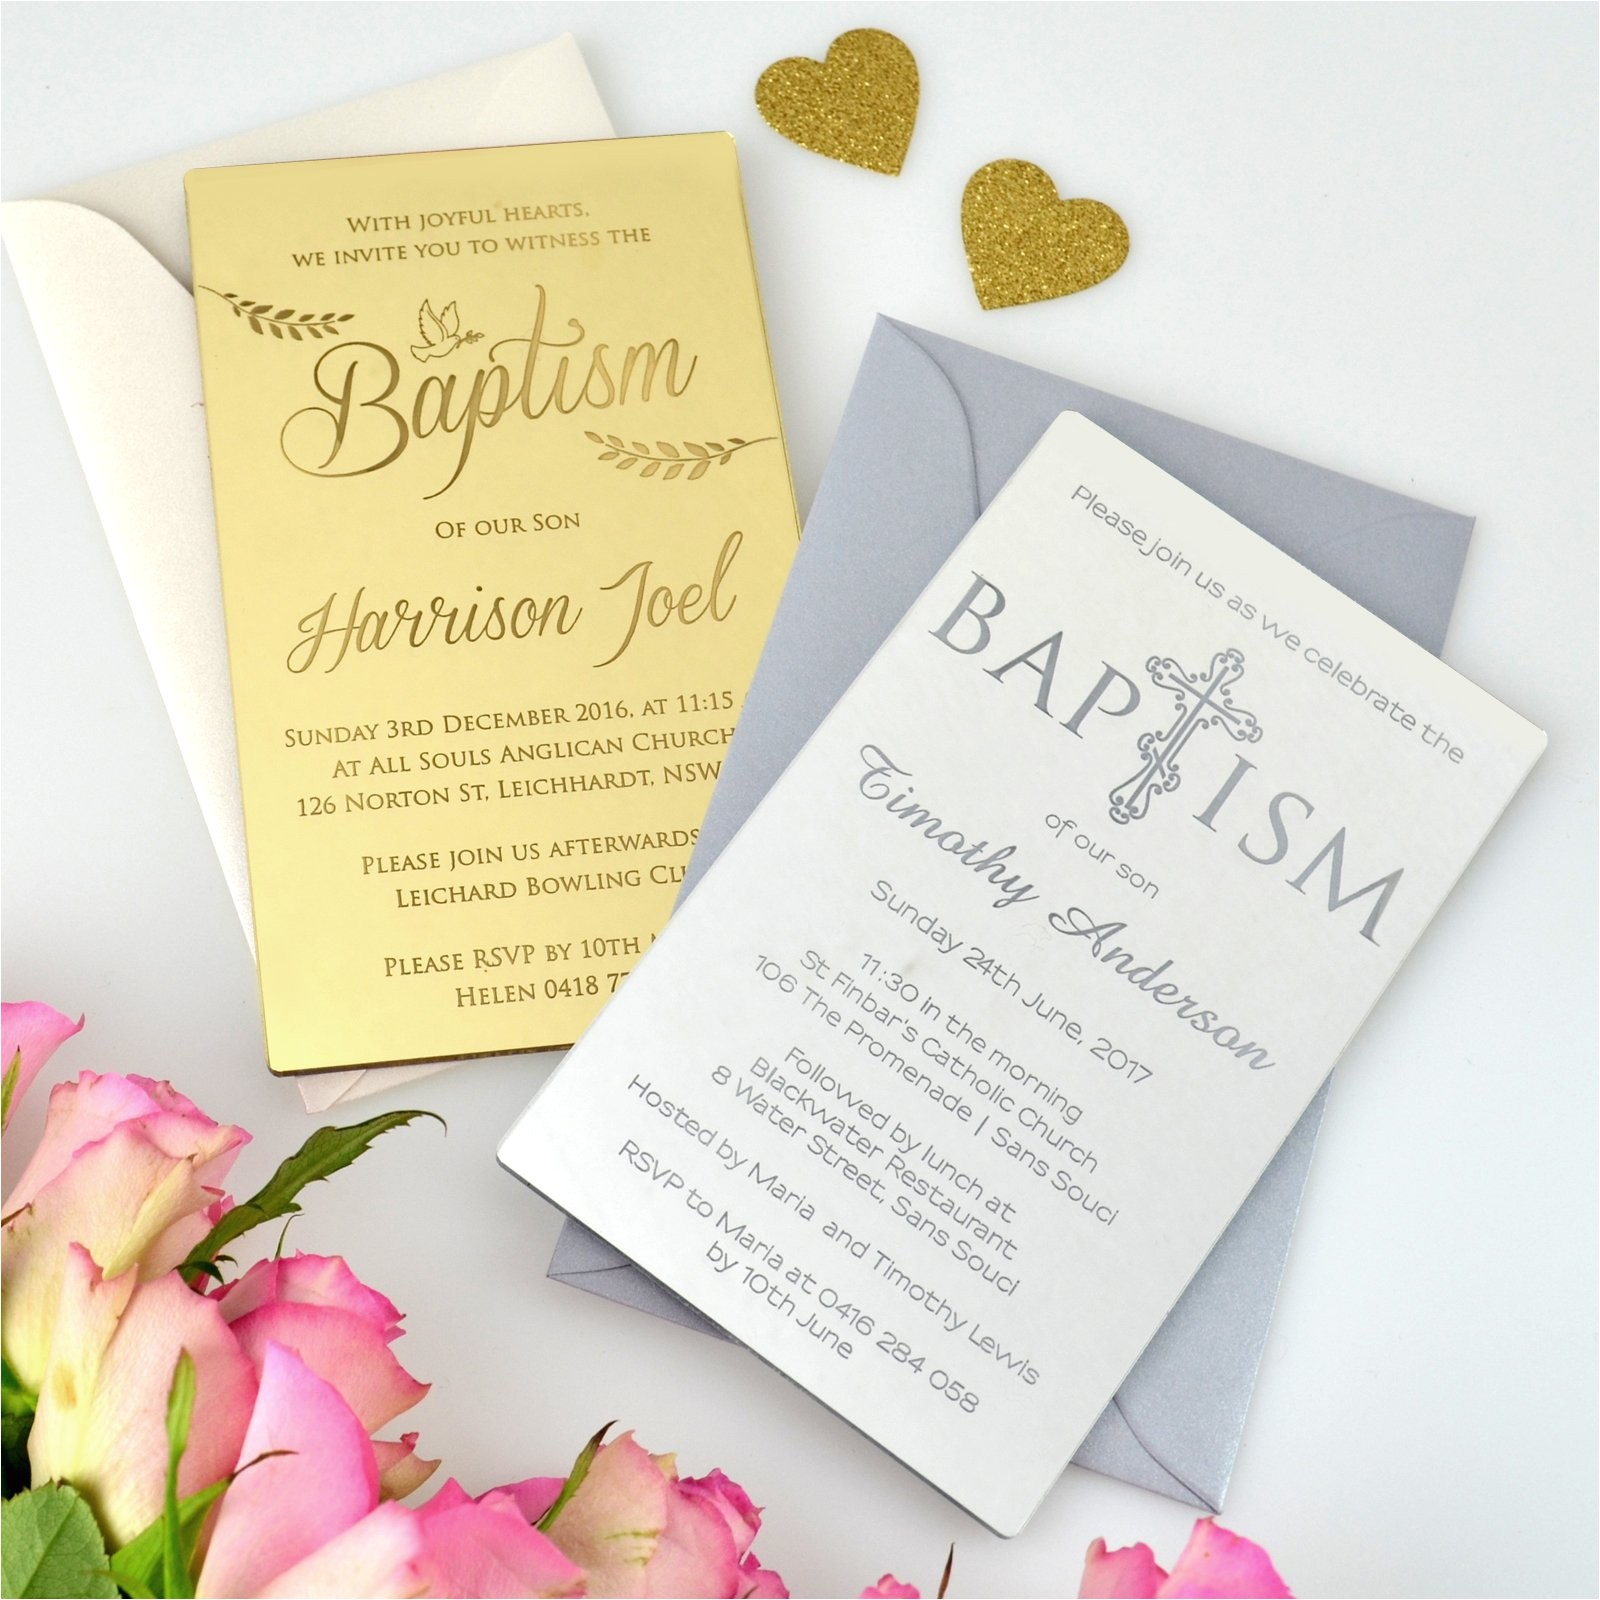 Cheap Baptism Invitations In Spanish Cheap Baptism Invitations Cheap Baptism Invitations In